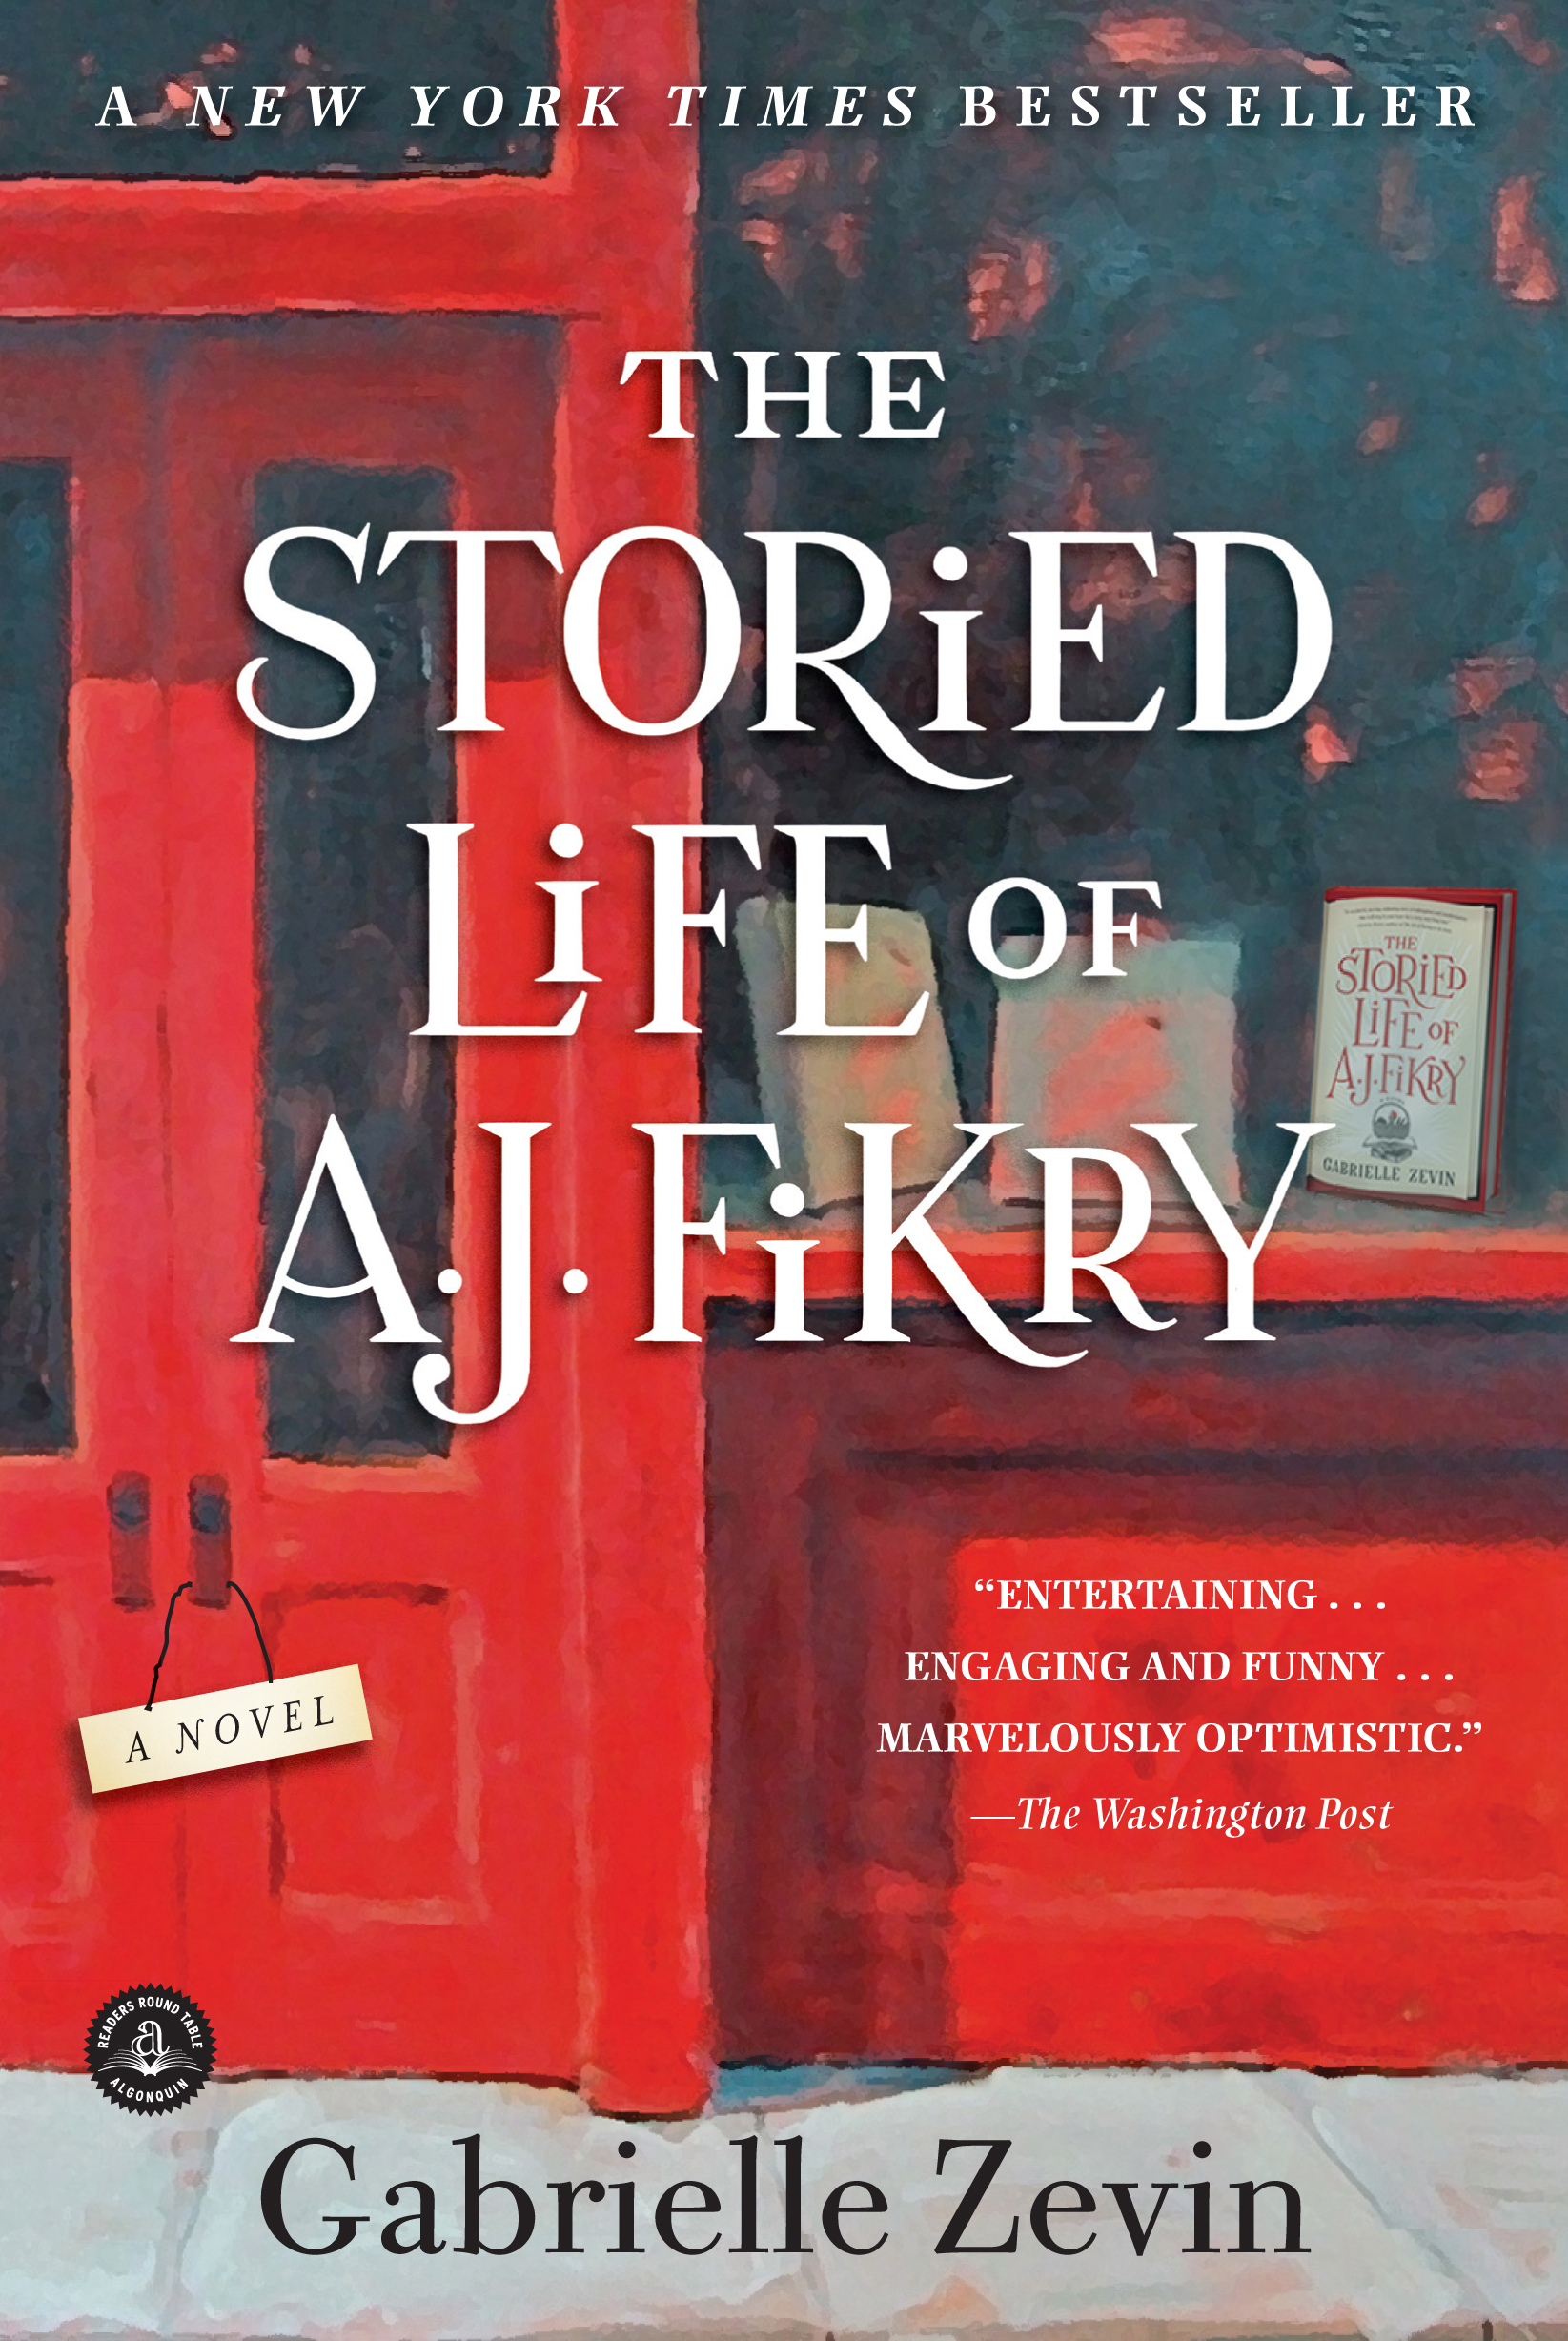 The Storied Life AJ Fikry